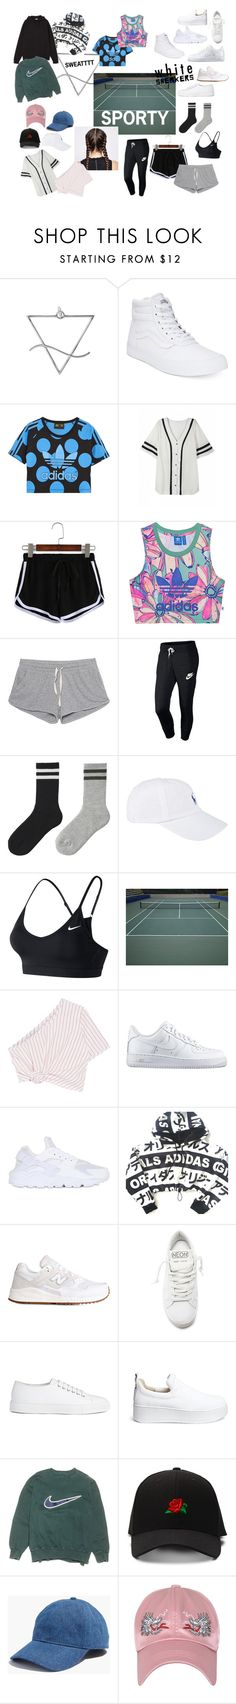 """""""SPORTY SPICE"""" by crescentchild ❤ liked on Polyvore featuring Vans, adidas Originals, American Vintage, NIKE, Uniqlo, Polo Ralph Lauren, Rosie Assoulin, adidas, New Balance and Golden Goose"""